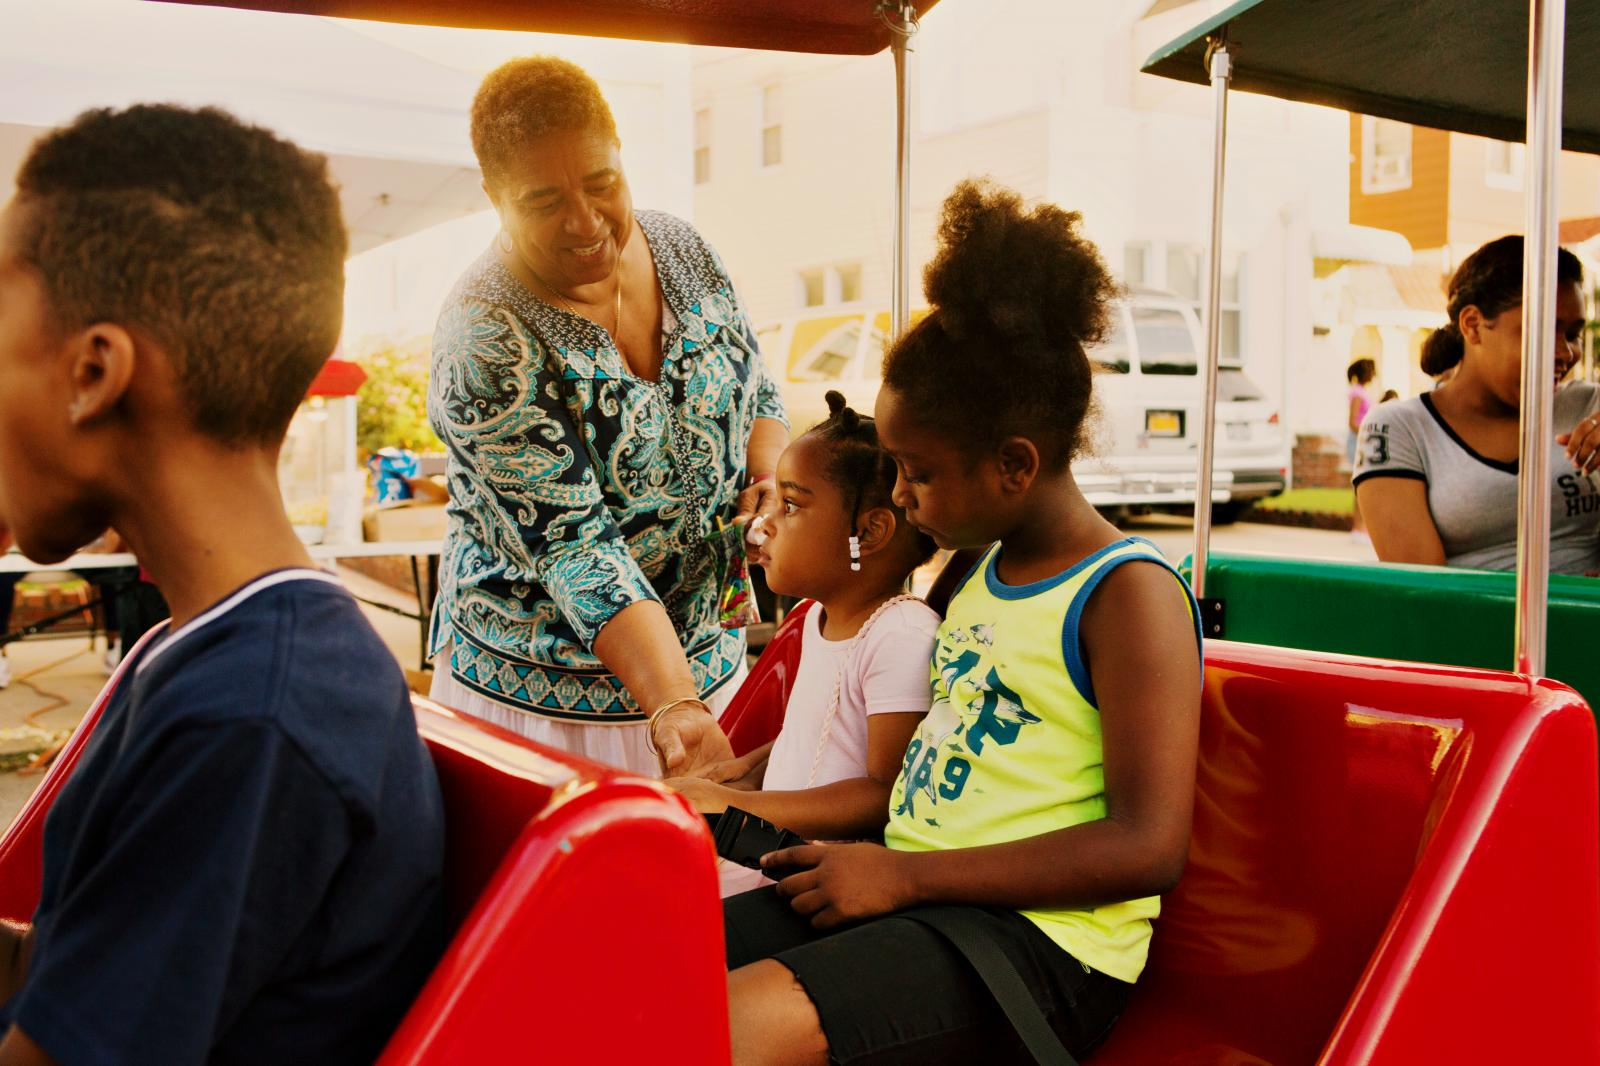 Cislyn Ricketts helps her granddaughter McKenzie Robinson, 3, get on a ride on the trackless train from OnTimeEntertainment during the block party in Laurelton neighborhood in Queens, New York hosted by Sudan Deane.